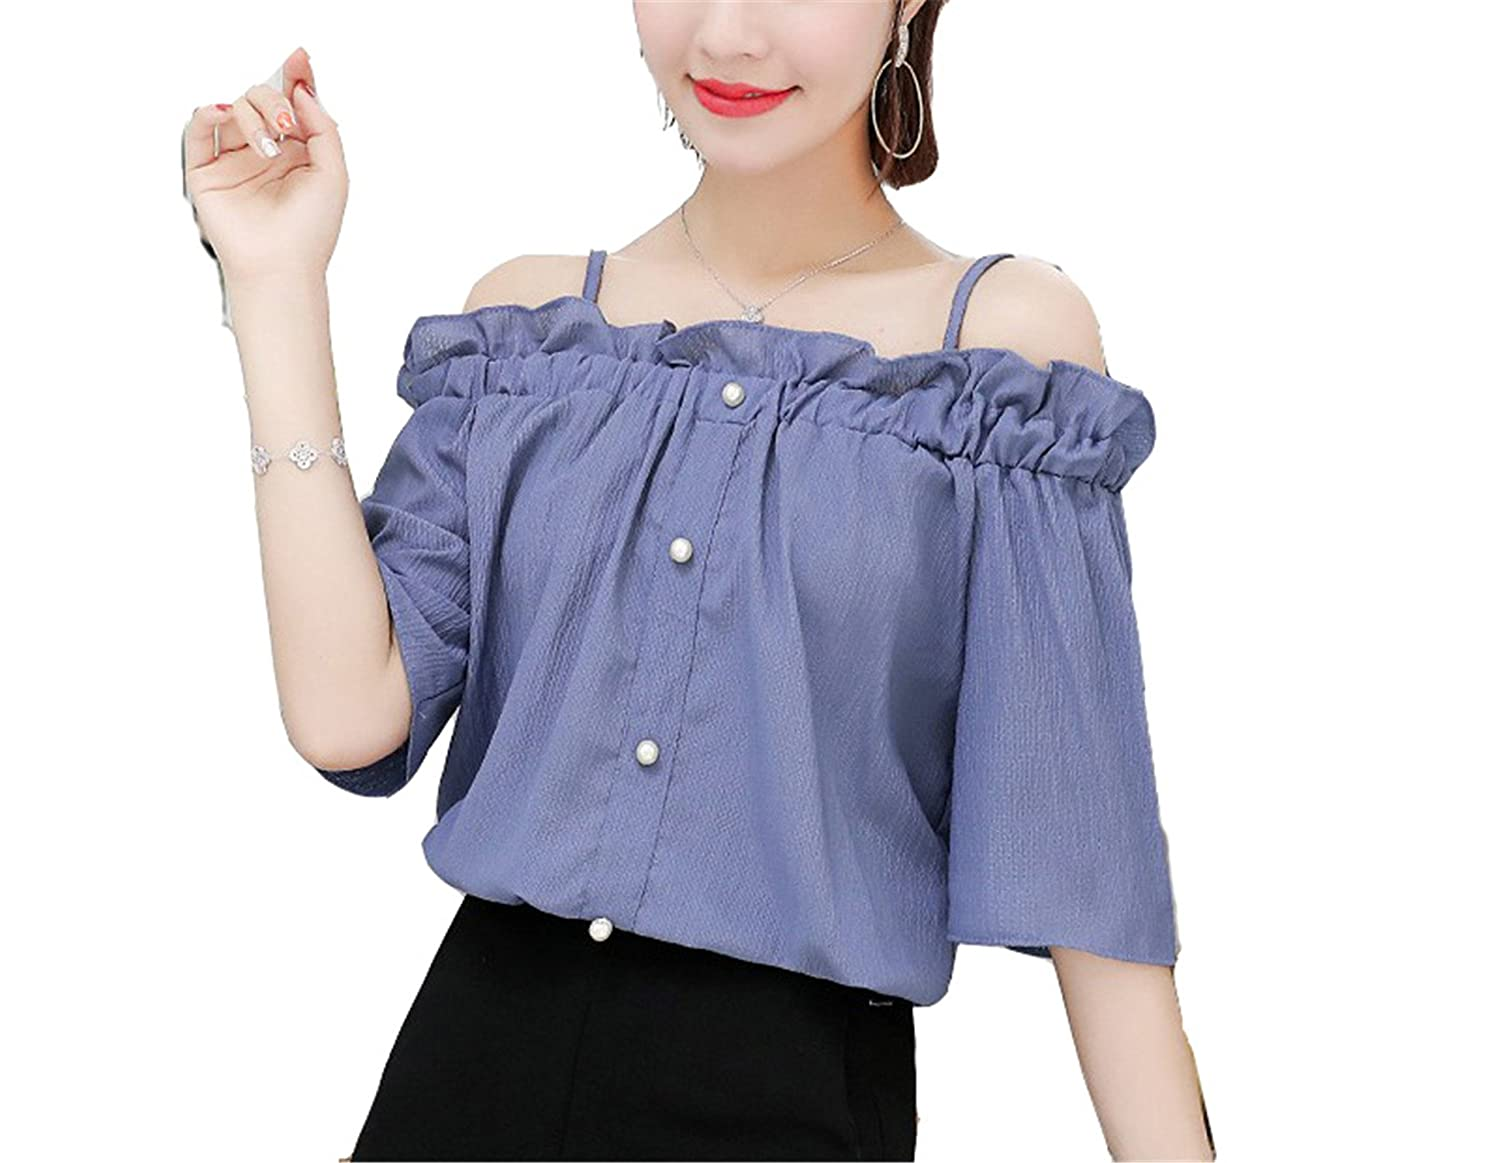 OUXIANGJU Summer New Fashion Women Blouses Off Shoulder Shirts Female Short Sleeve Sexy Strap Tops at Amazon Womens Clothing store: